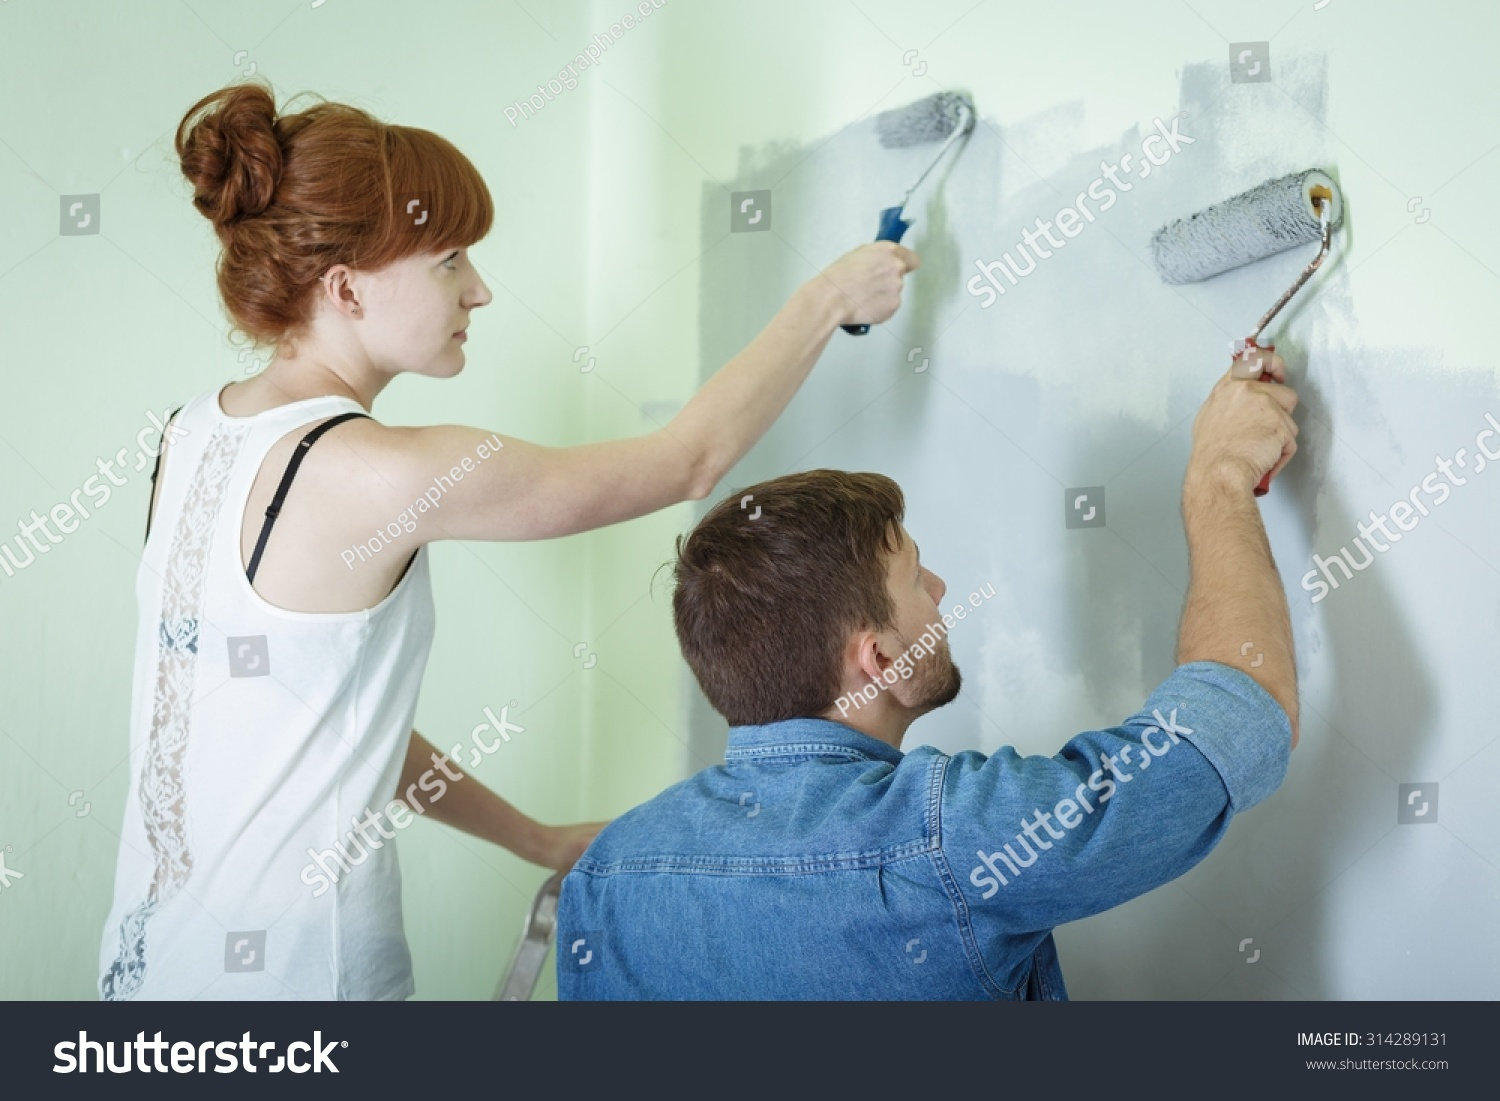 Save To A Lightbox Young Woman Redecorating Her House